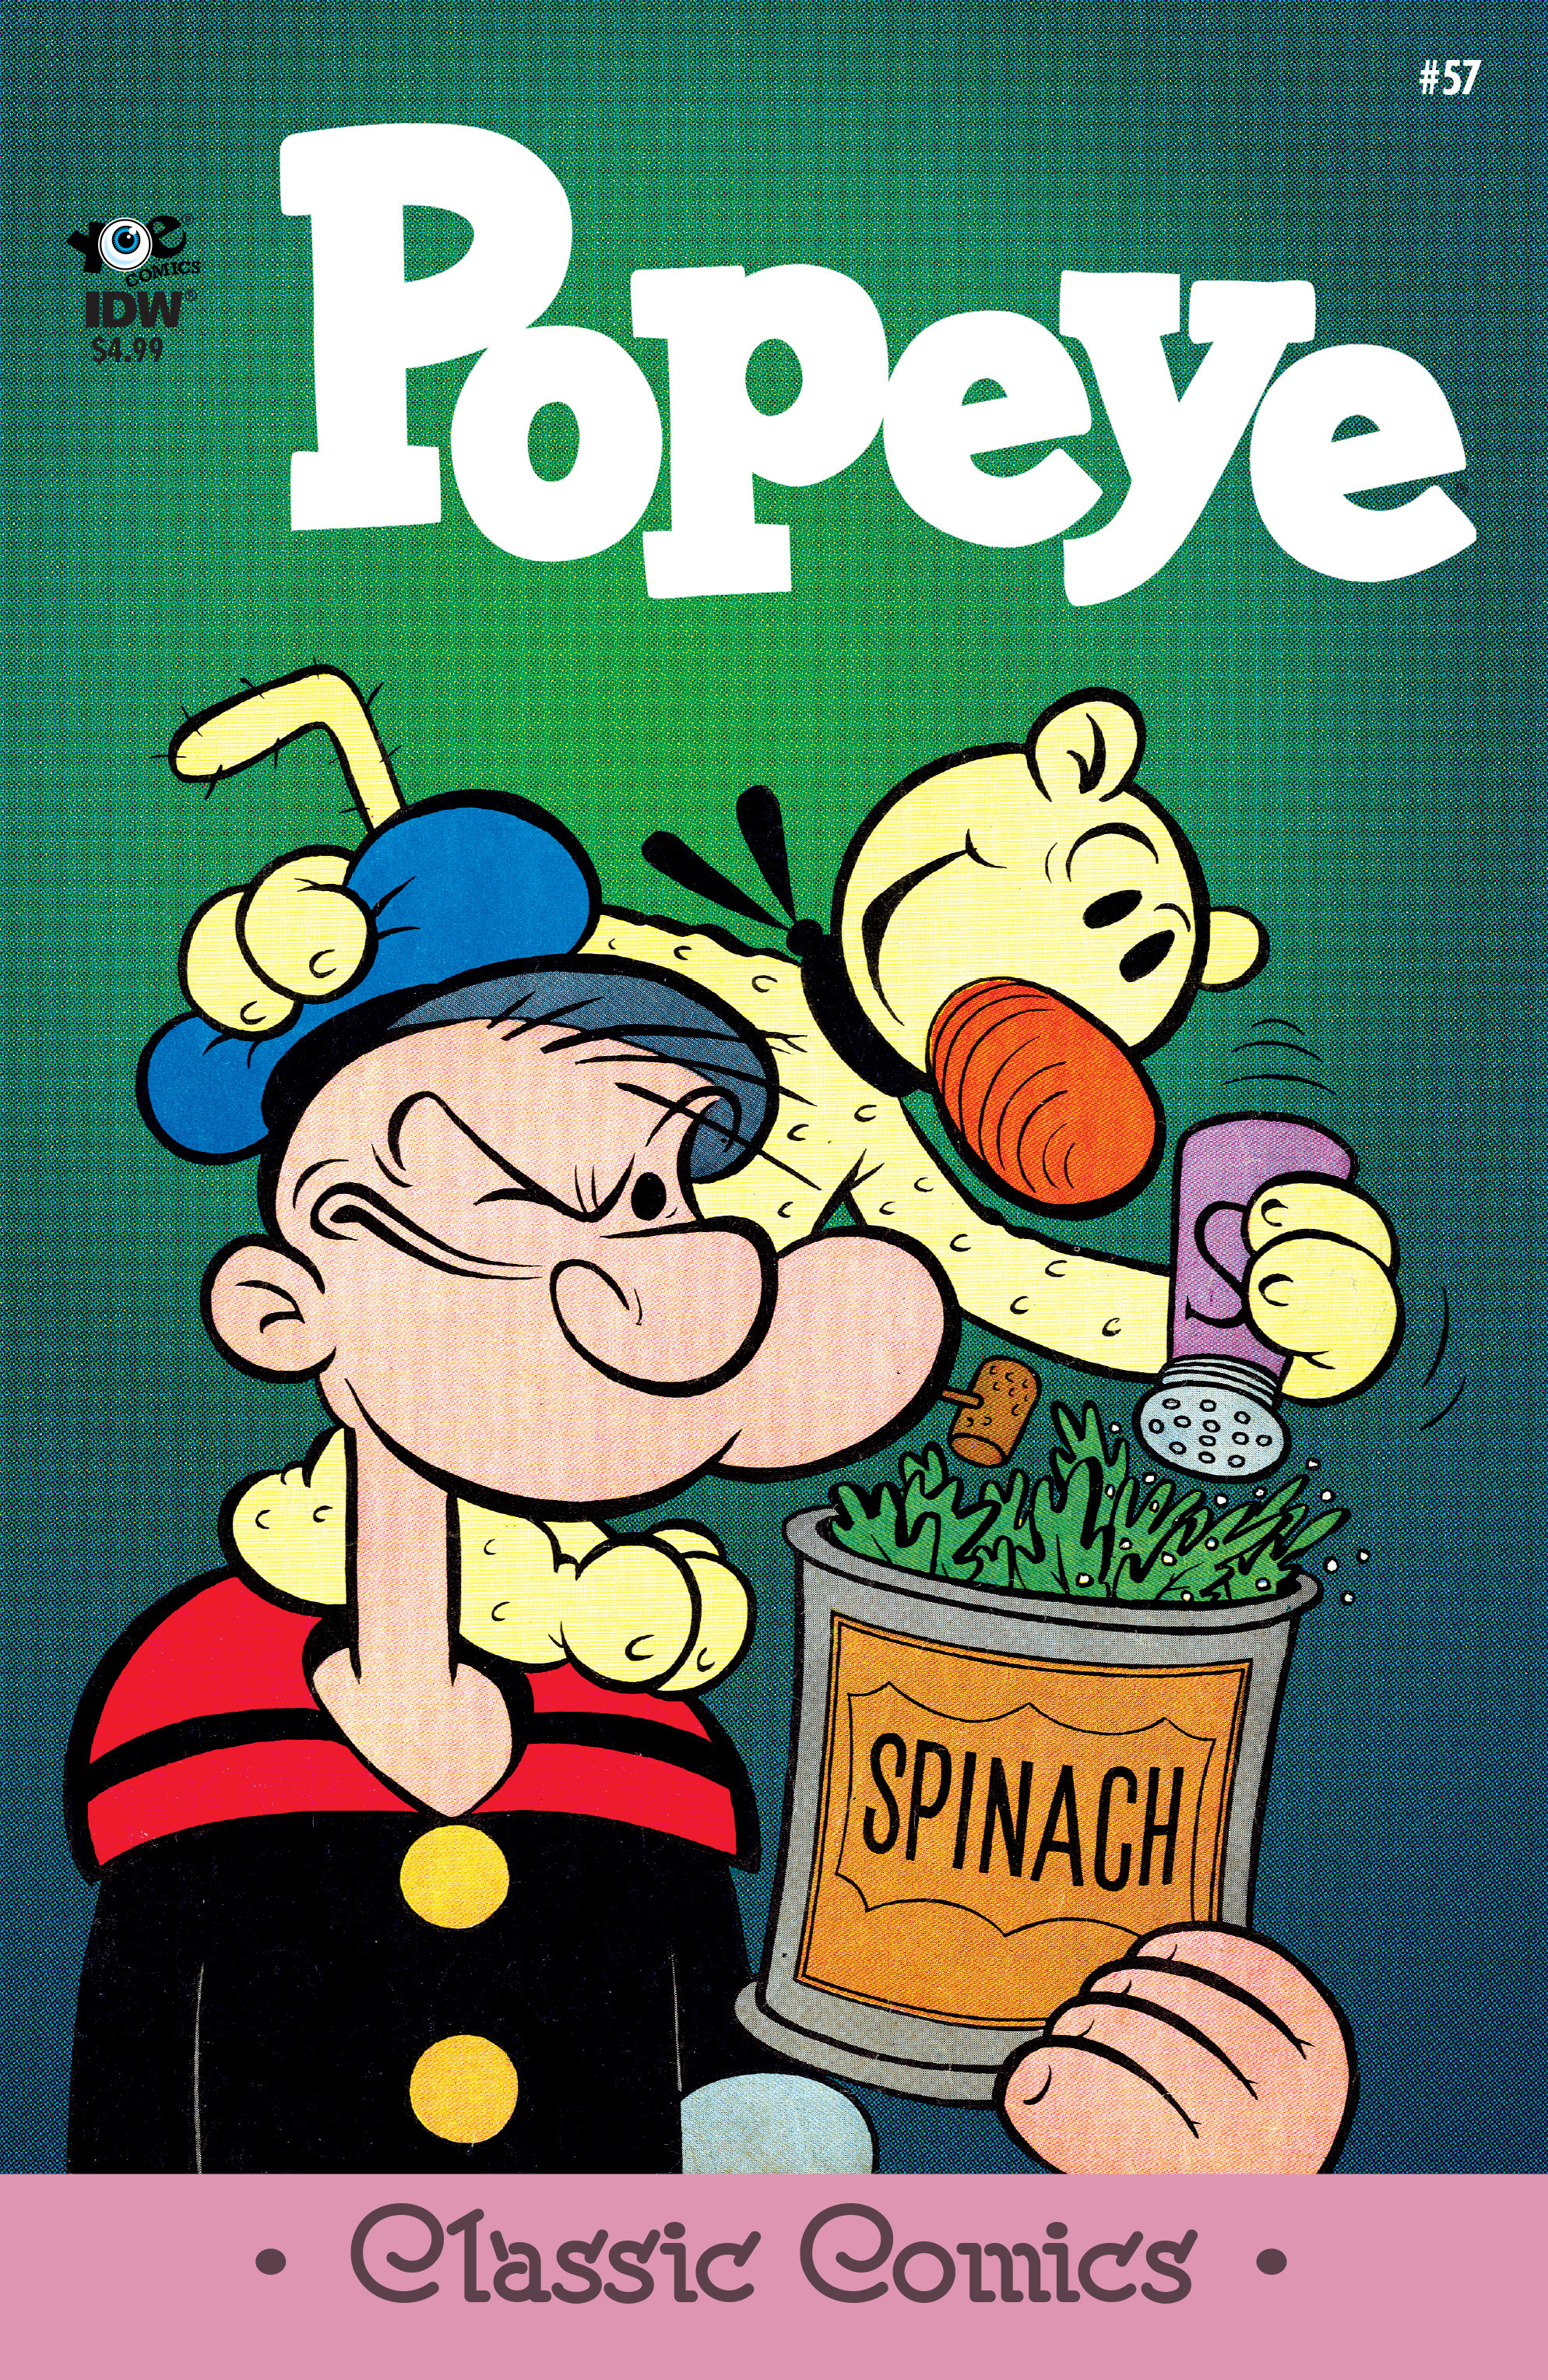 Read online Classic Popeye comic -  Issue #57 - 1